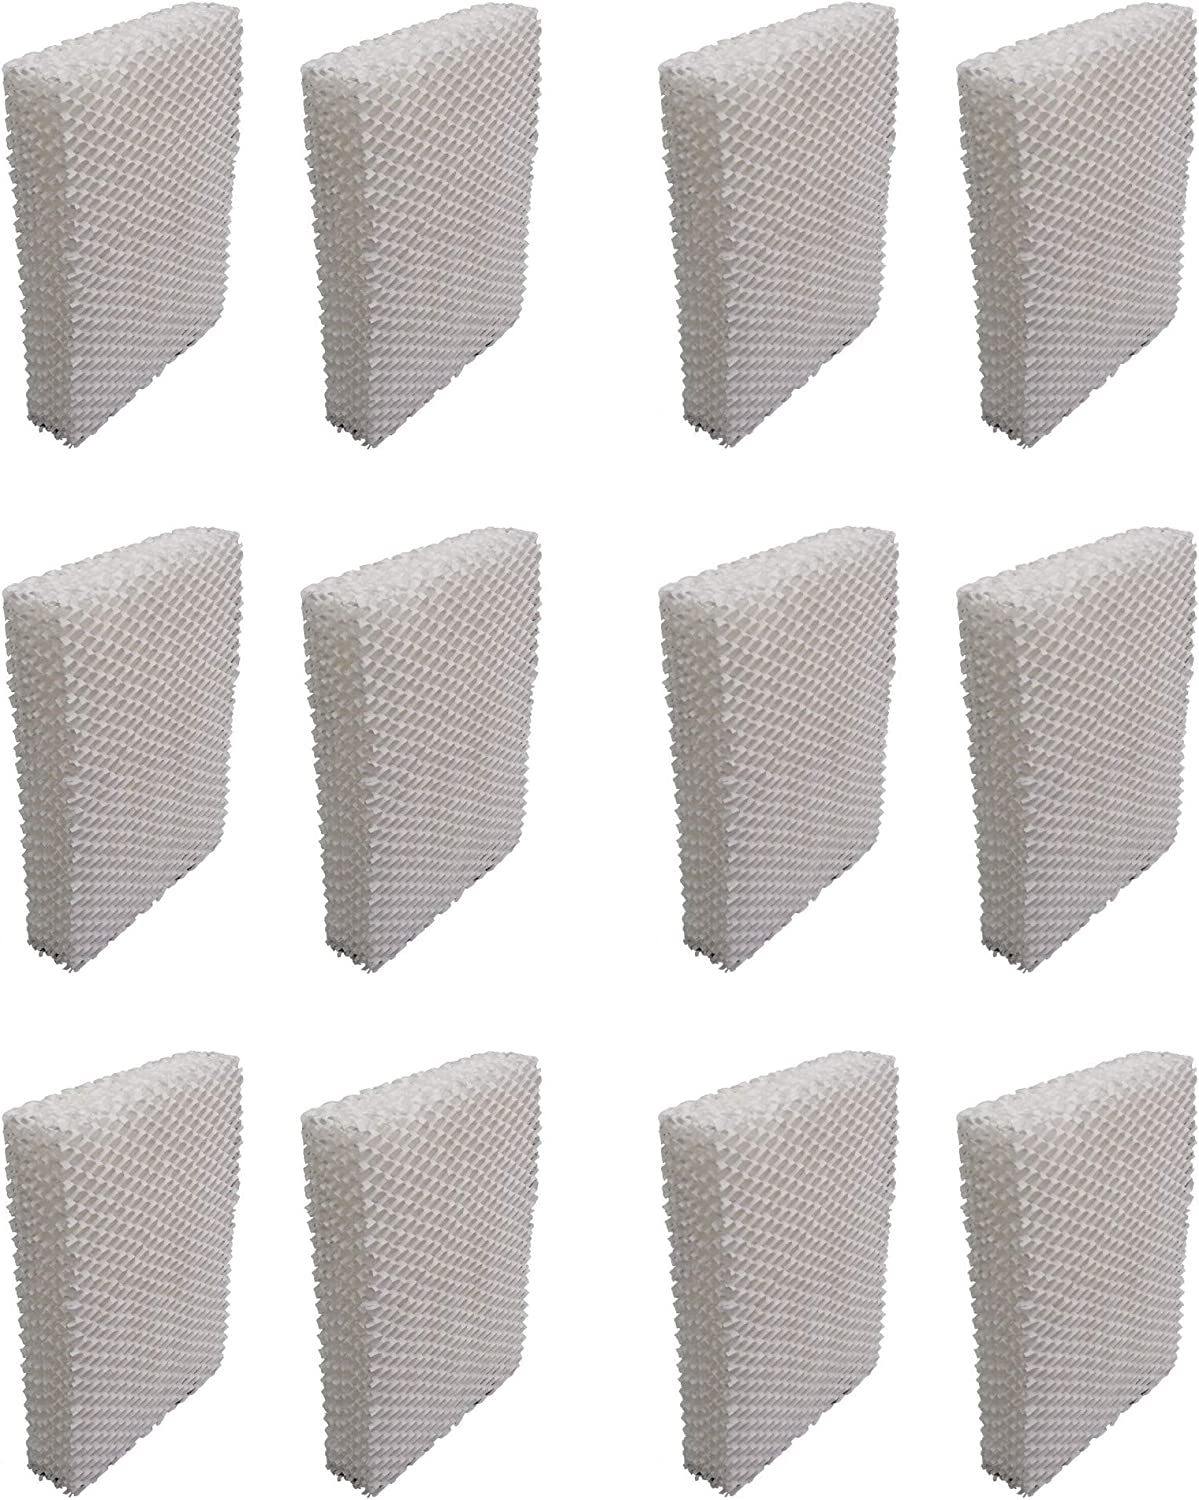 RO6G Humidifier Filter for Vornado We OFFer at cheap prices Evap1 Evap3 12-Pack Max 86% OFF Evap2